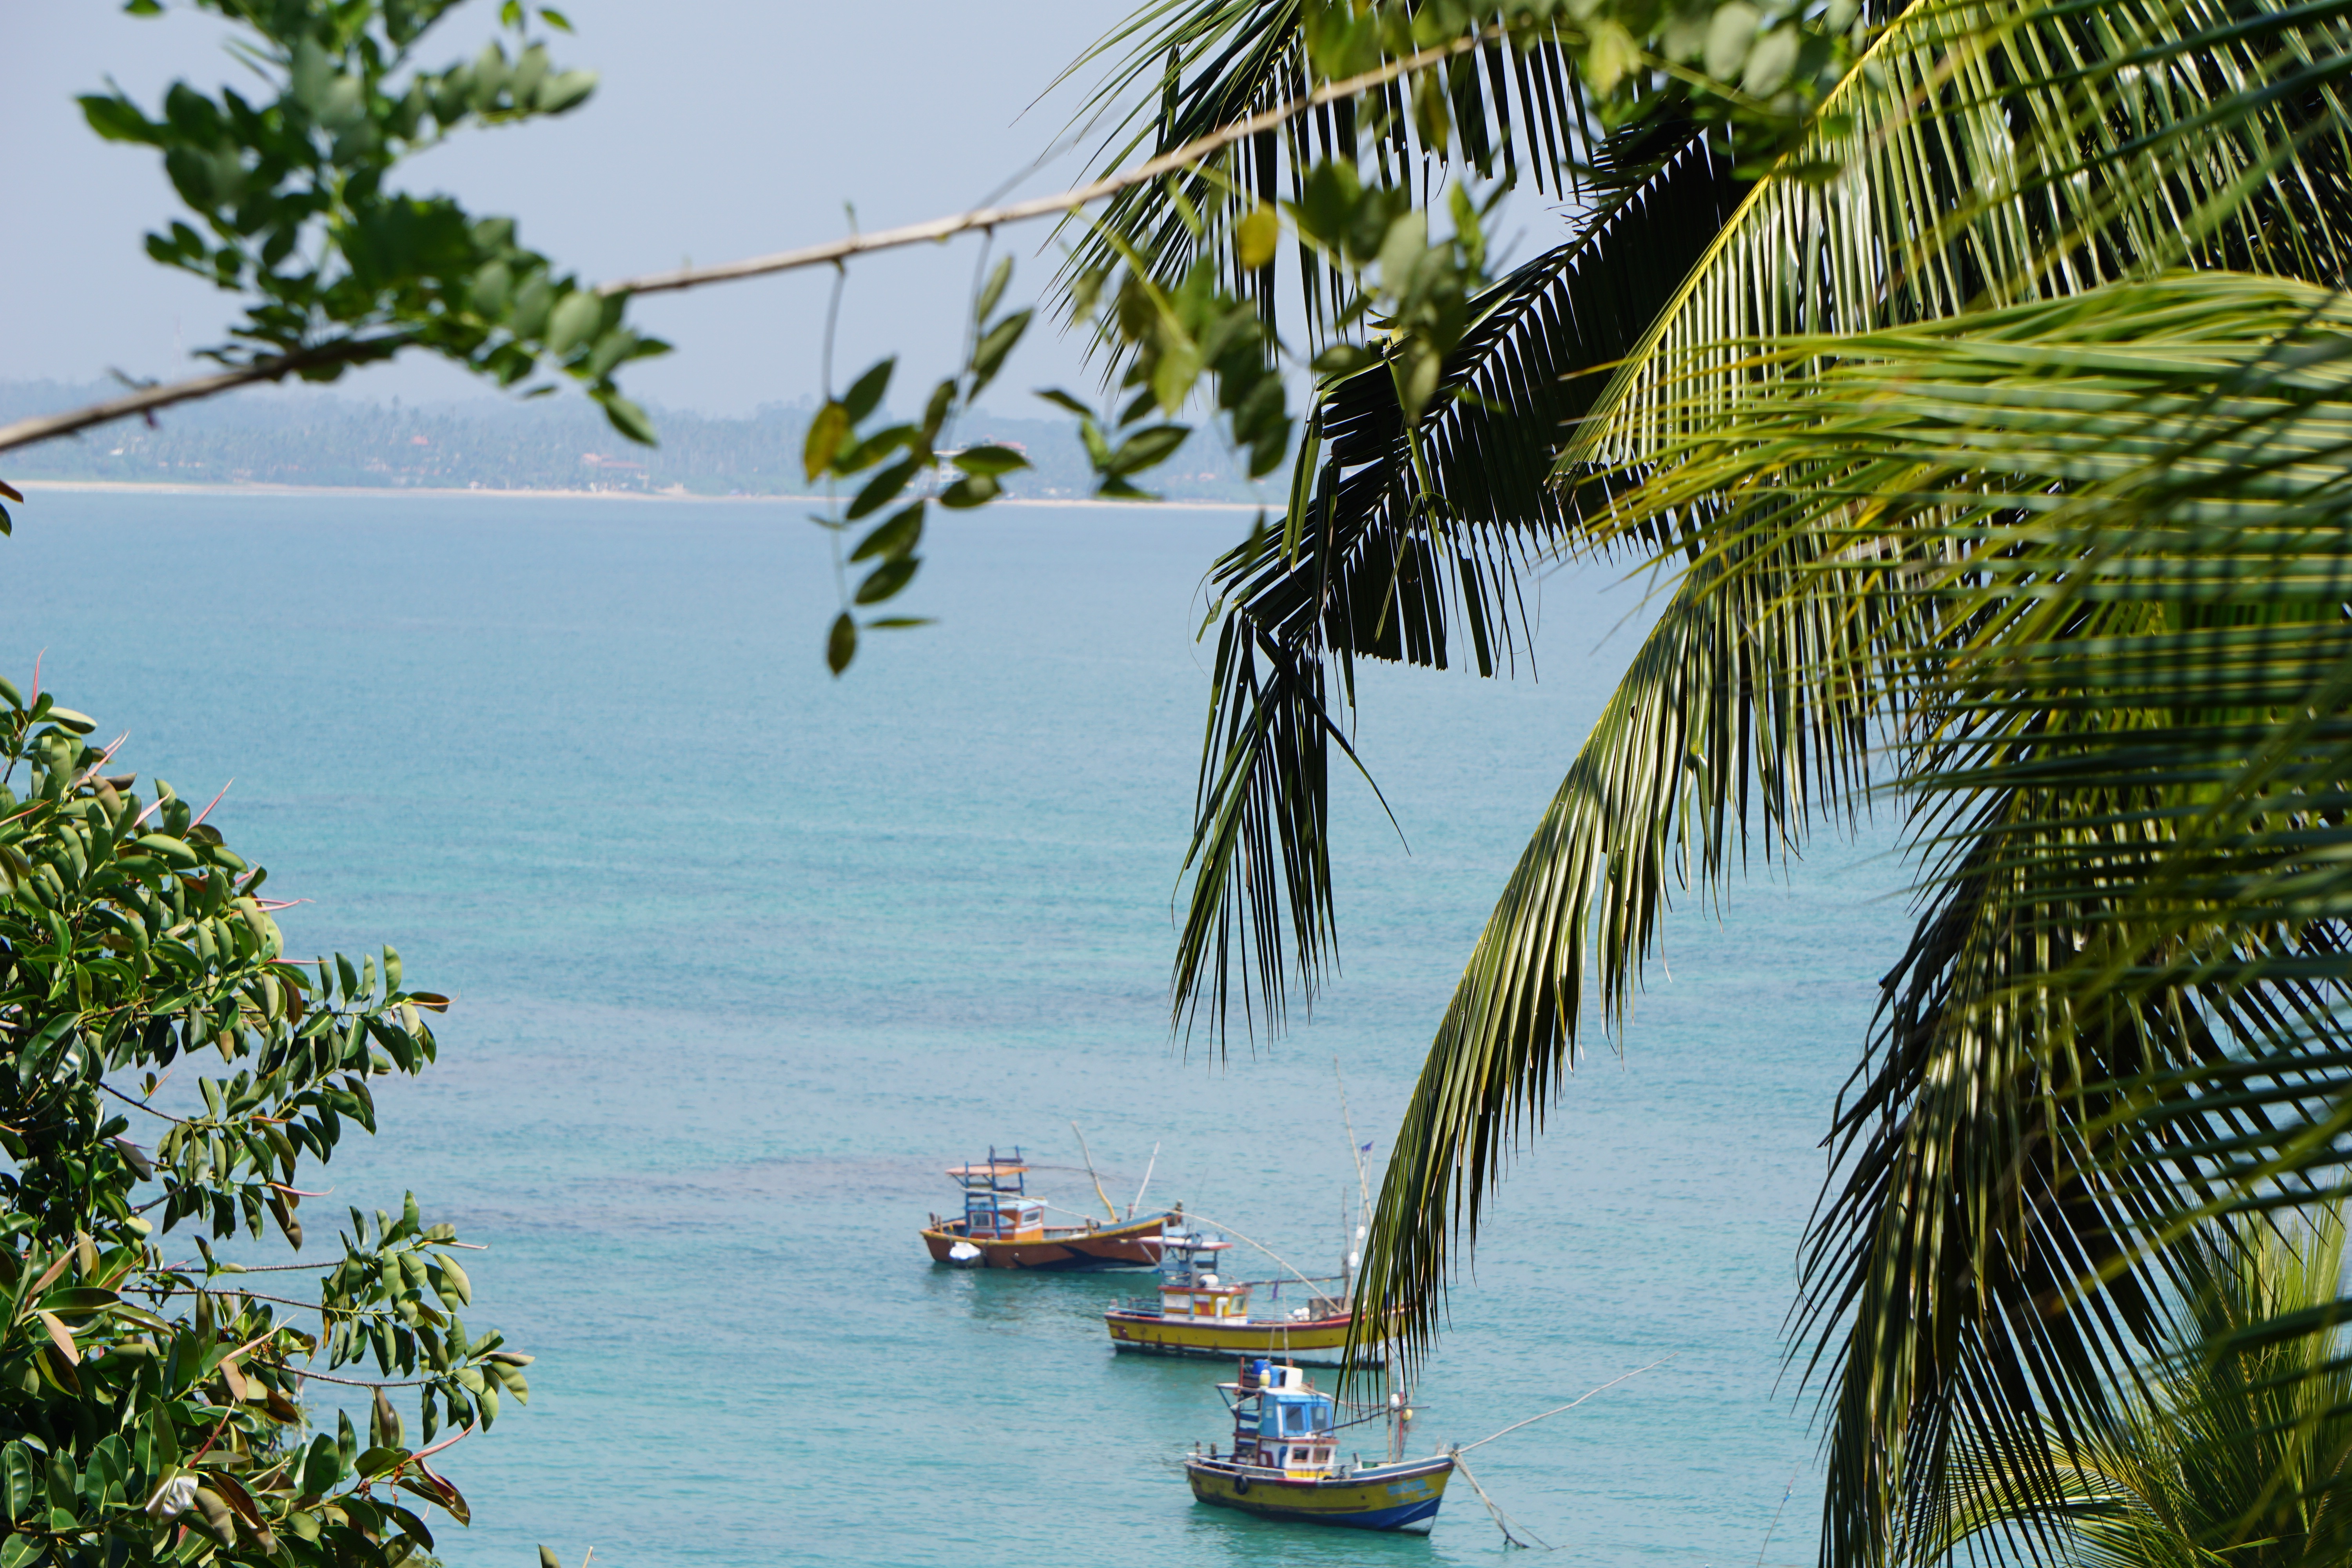 Picturesque views over Weligama bay